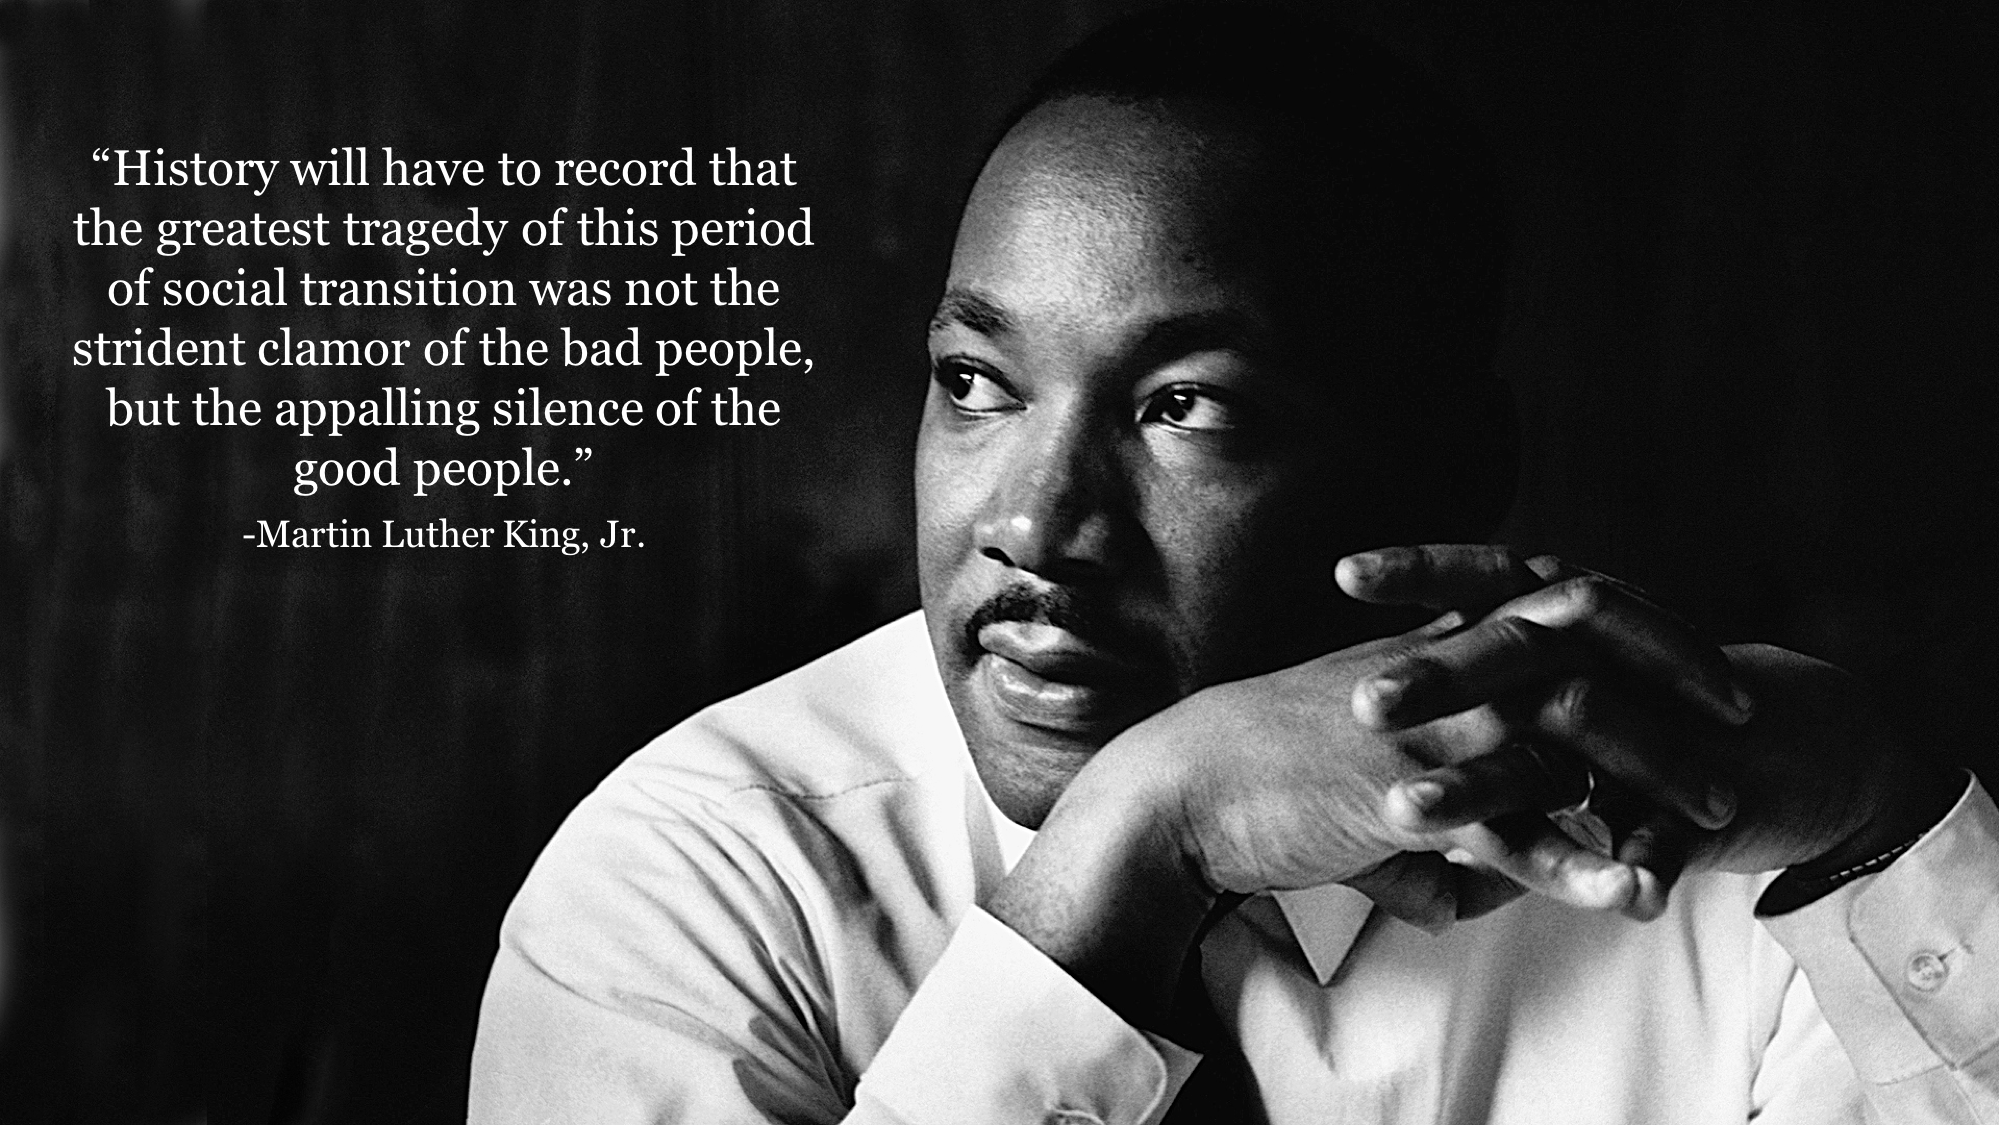 """History will have to record that the greatest tragedy of this period of social transition was not the strident clamor of the bad people, but the appalling silence of the good people."" -Martin Luther King, Jr. [1999×1125]"